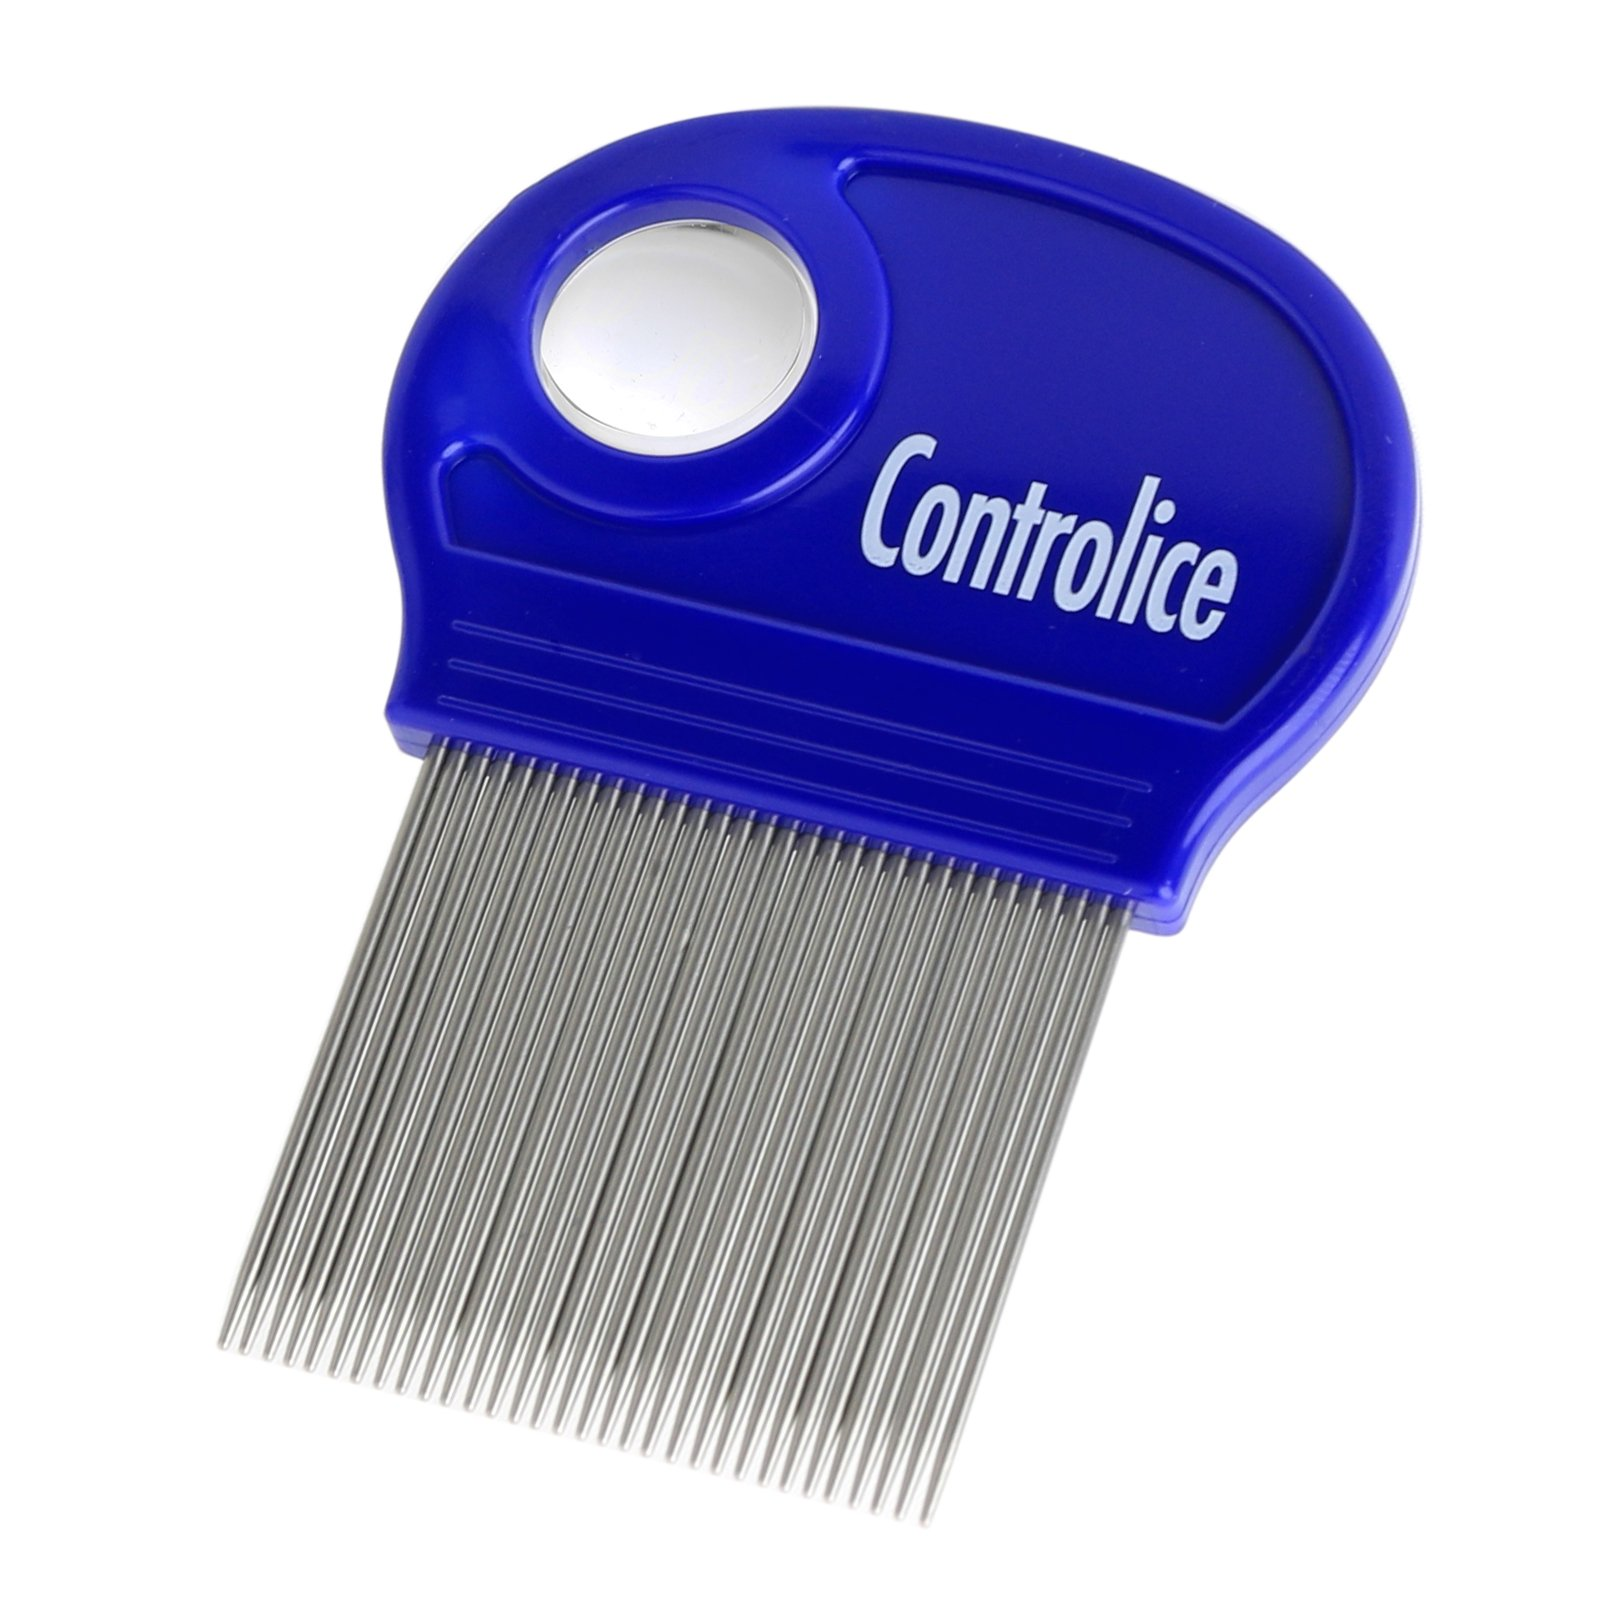 Controlice Lice Buster Comb: Head Lice Comb For Easy, Efficient Lice Treatment | Smooth Easy-Grip Handle with Built-In Magnifier | Works on Thick, Long or Curly Hair